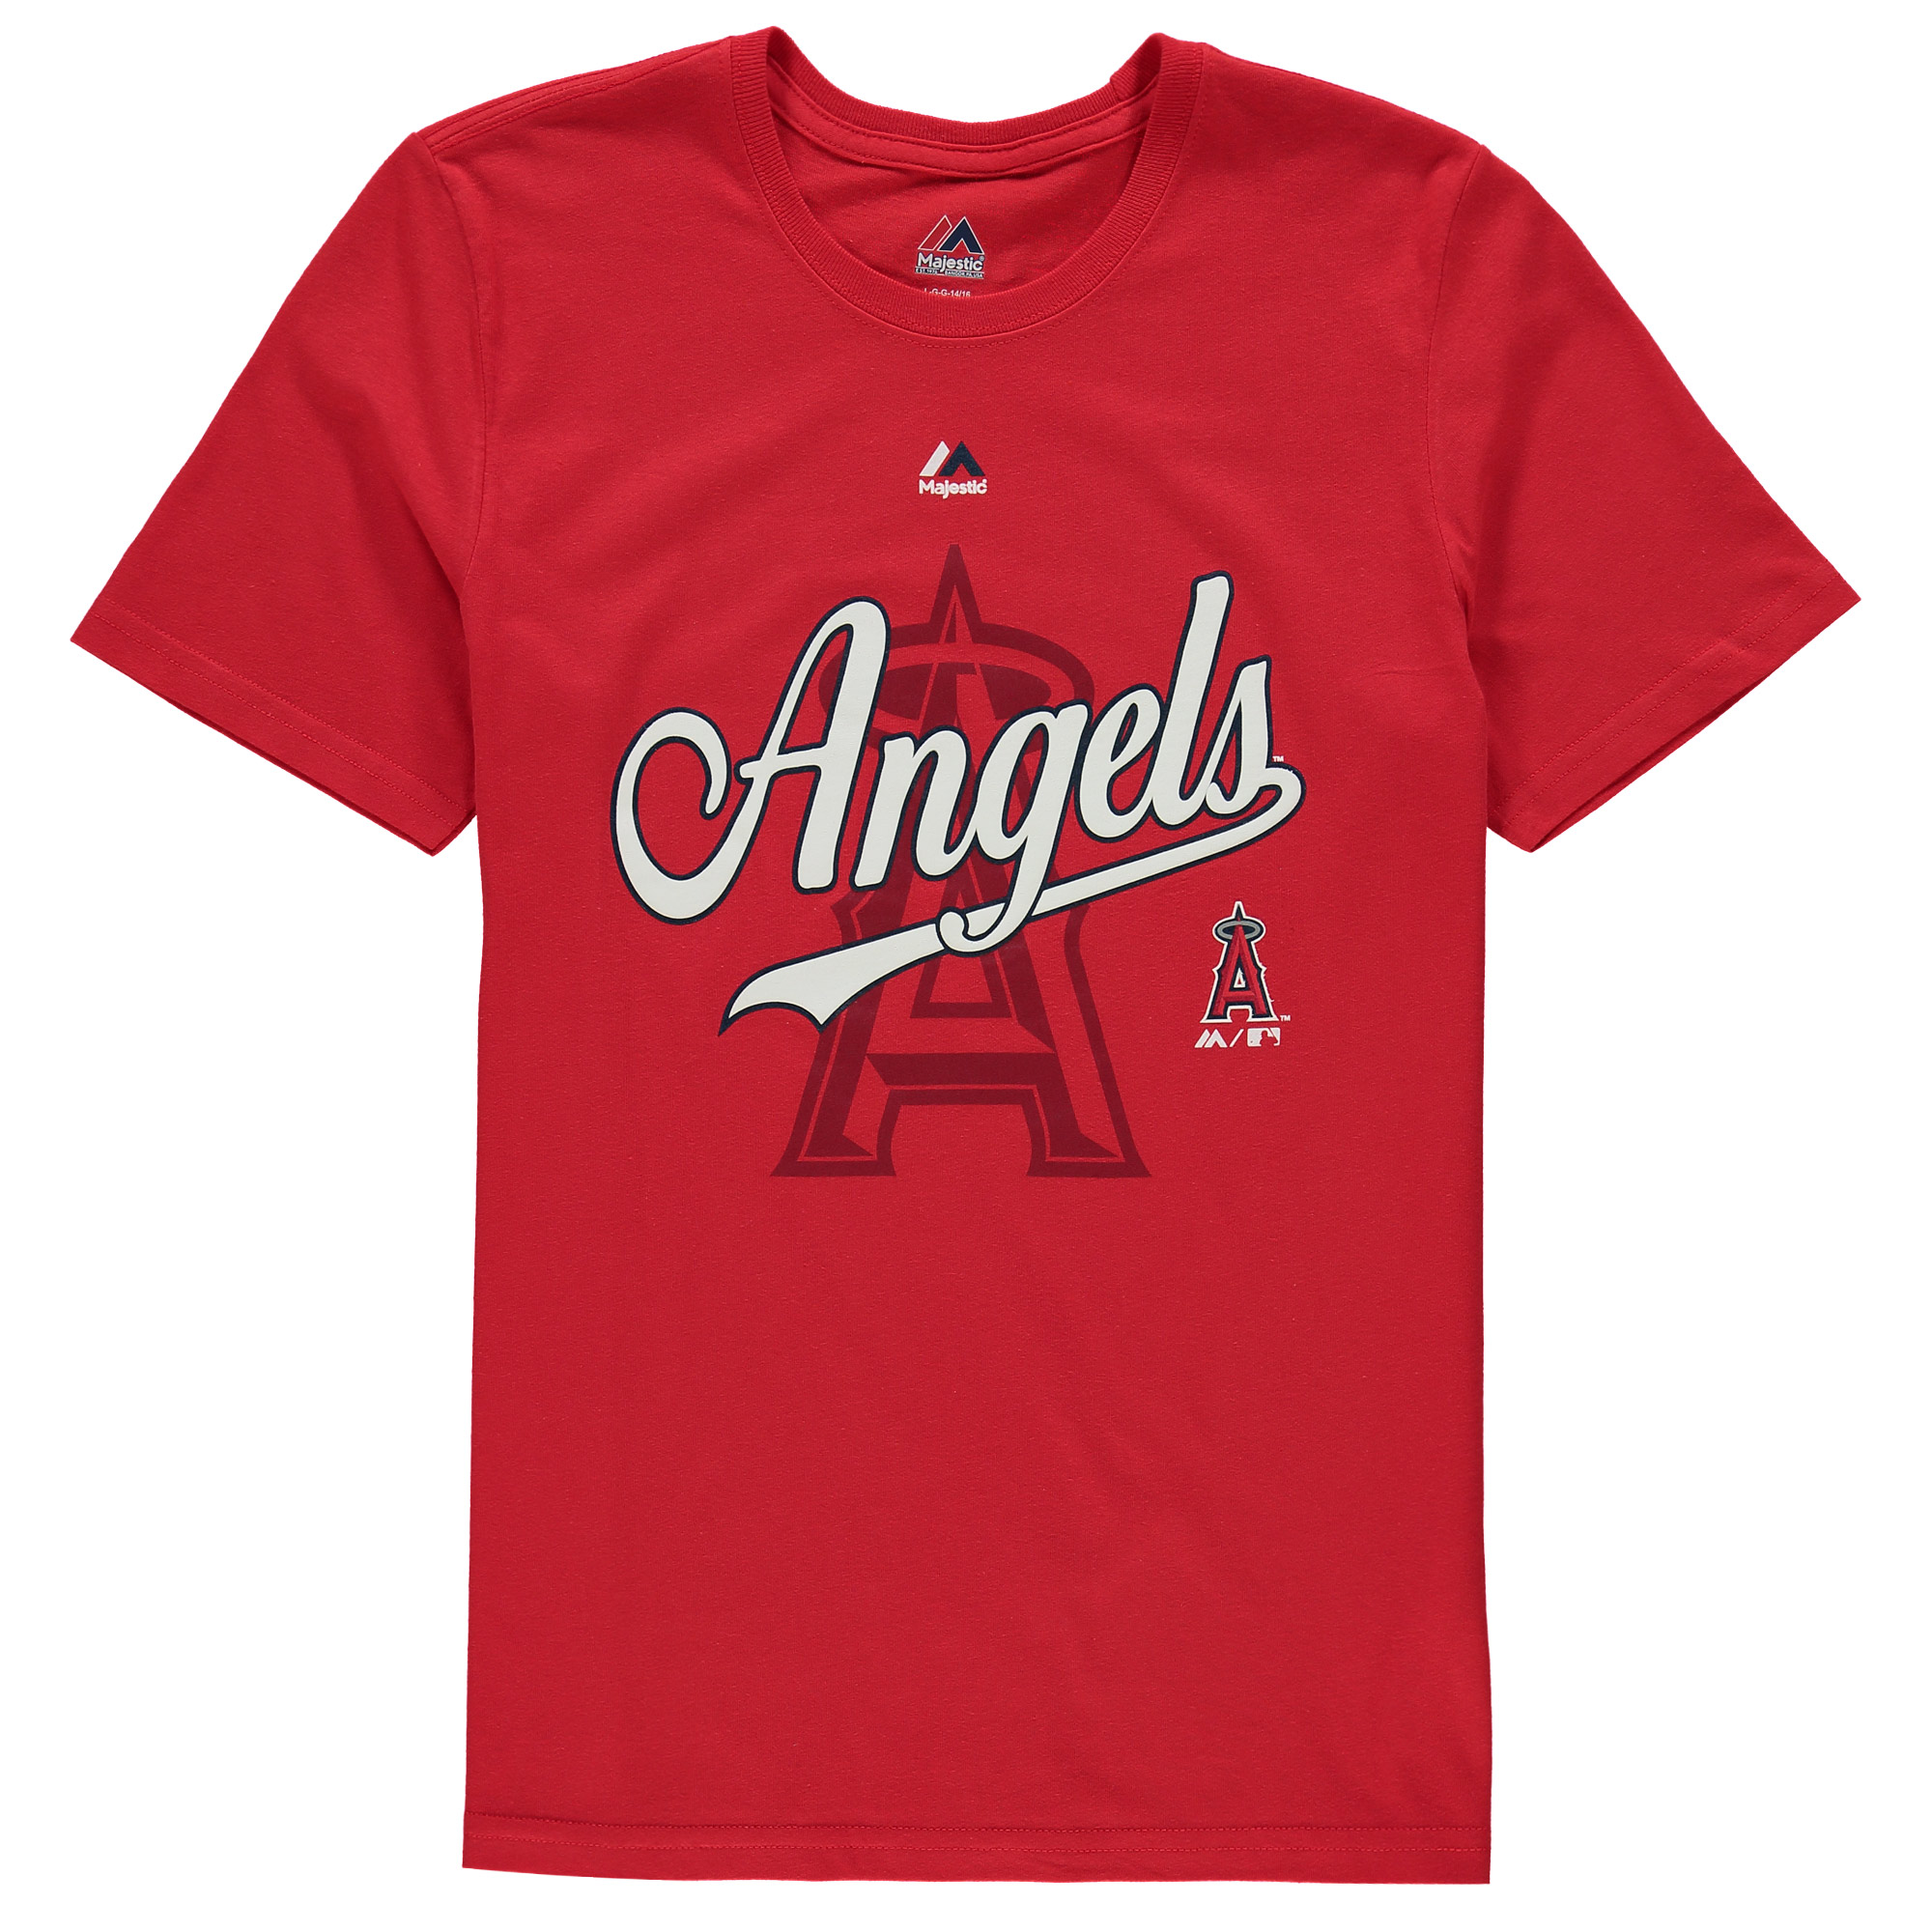 Los Angeles Angels Majestic Youth At the Game T-Shirt - Red